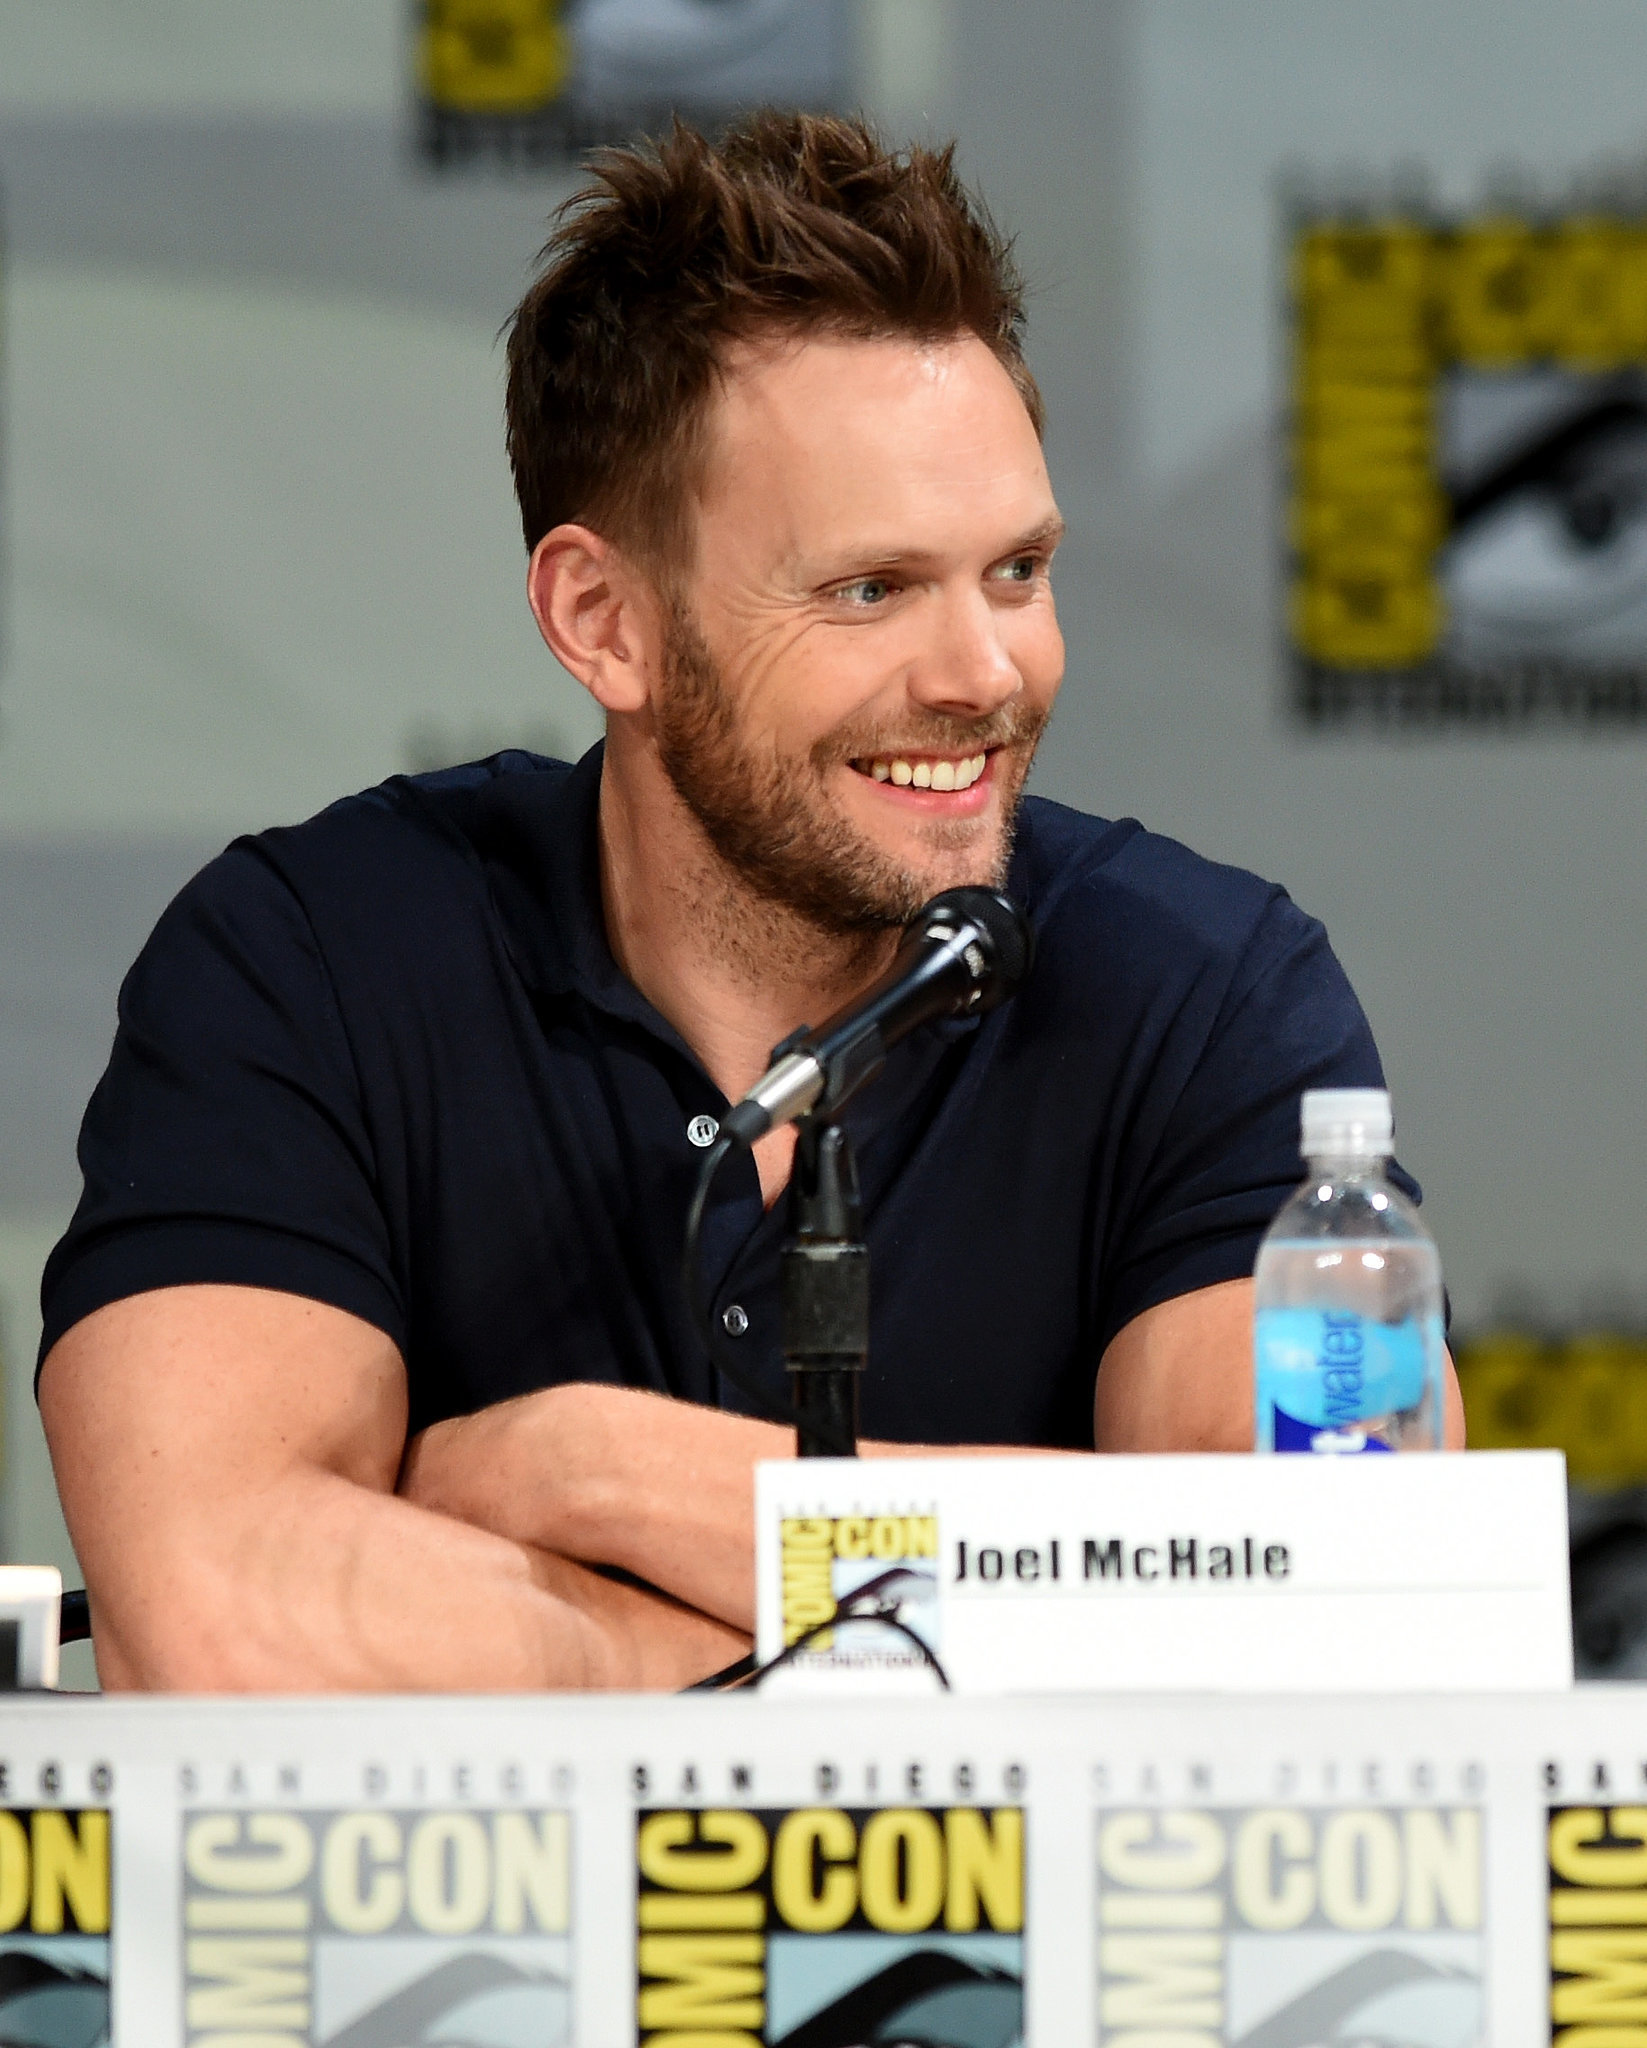 Joel McHale Proved Comedians Can Also Be Beefy